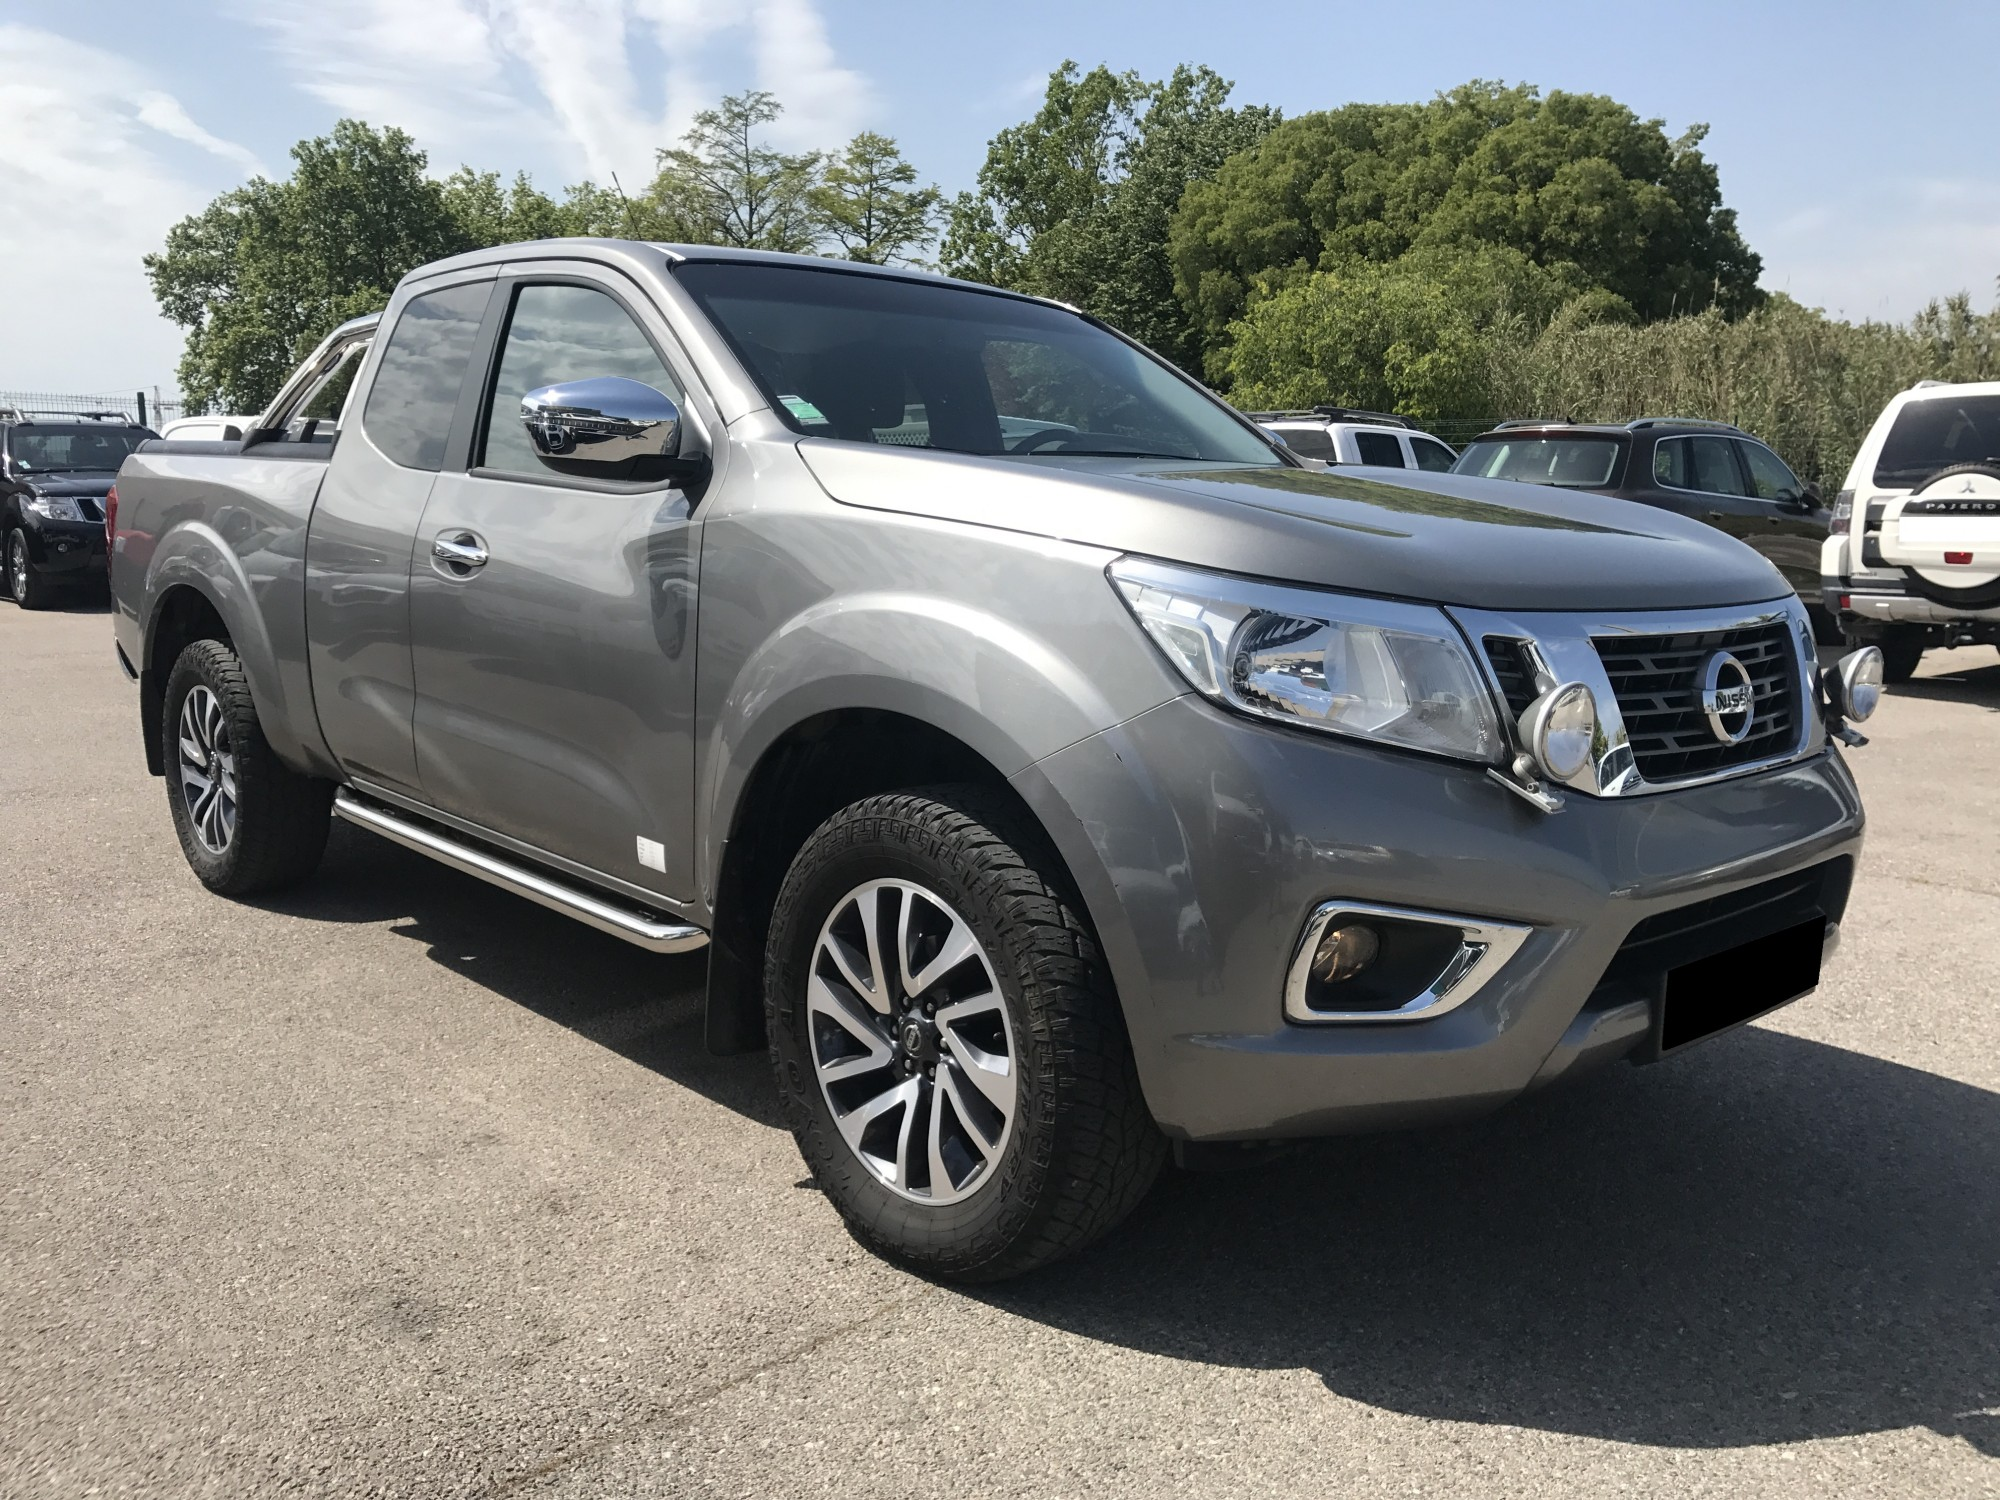 nissan navara np300 2 3 dci 163 ch king cab de 2016 avec tva voir dans les bouches du rh ne. Black Bedroom Furniture Sets. Home Design Ideas